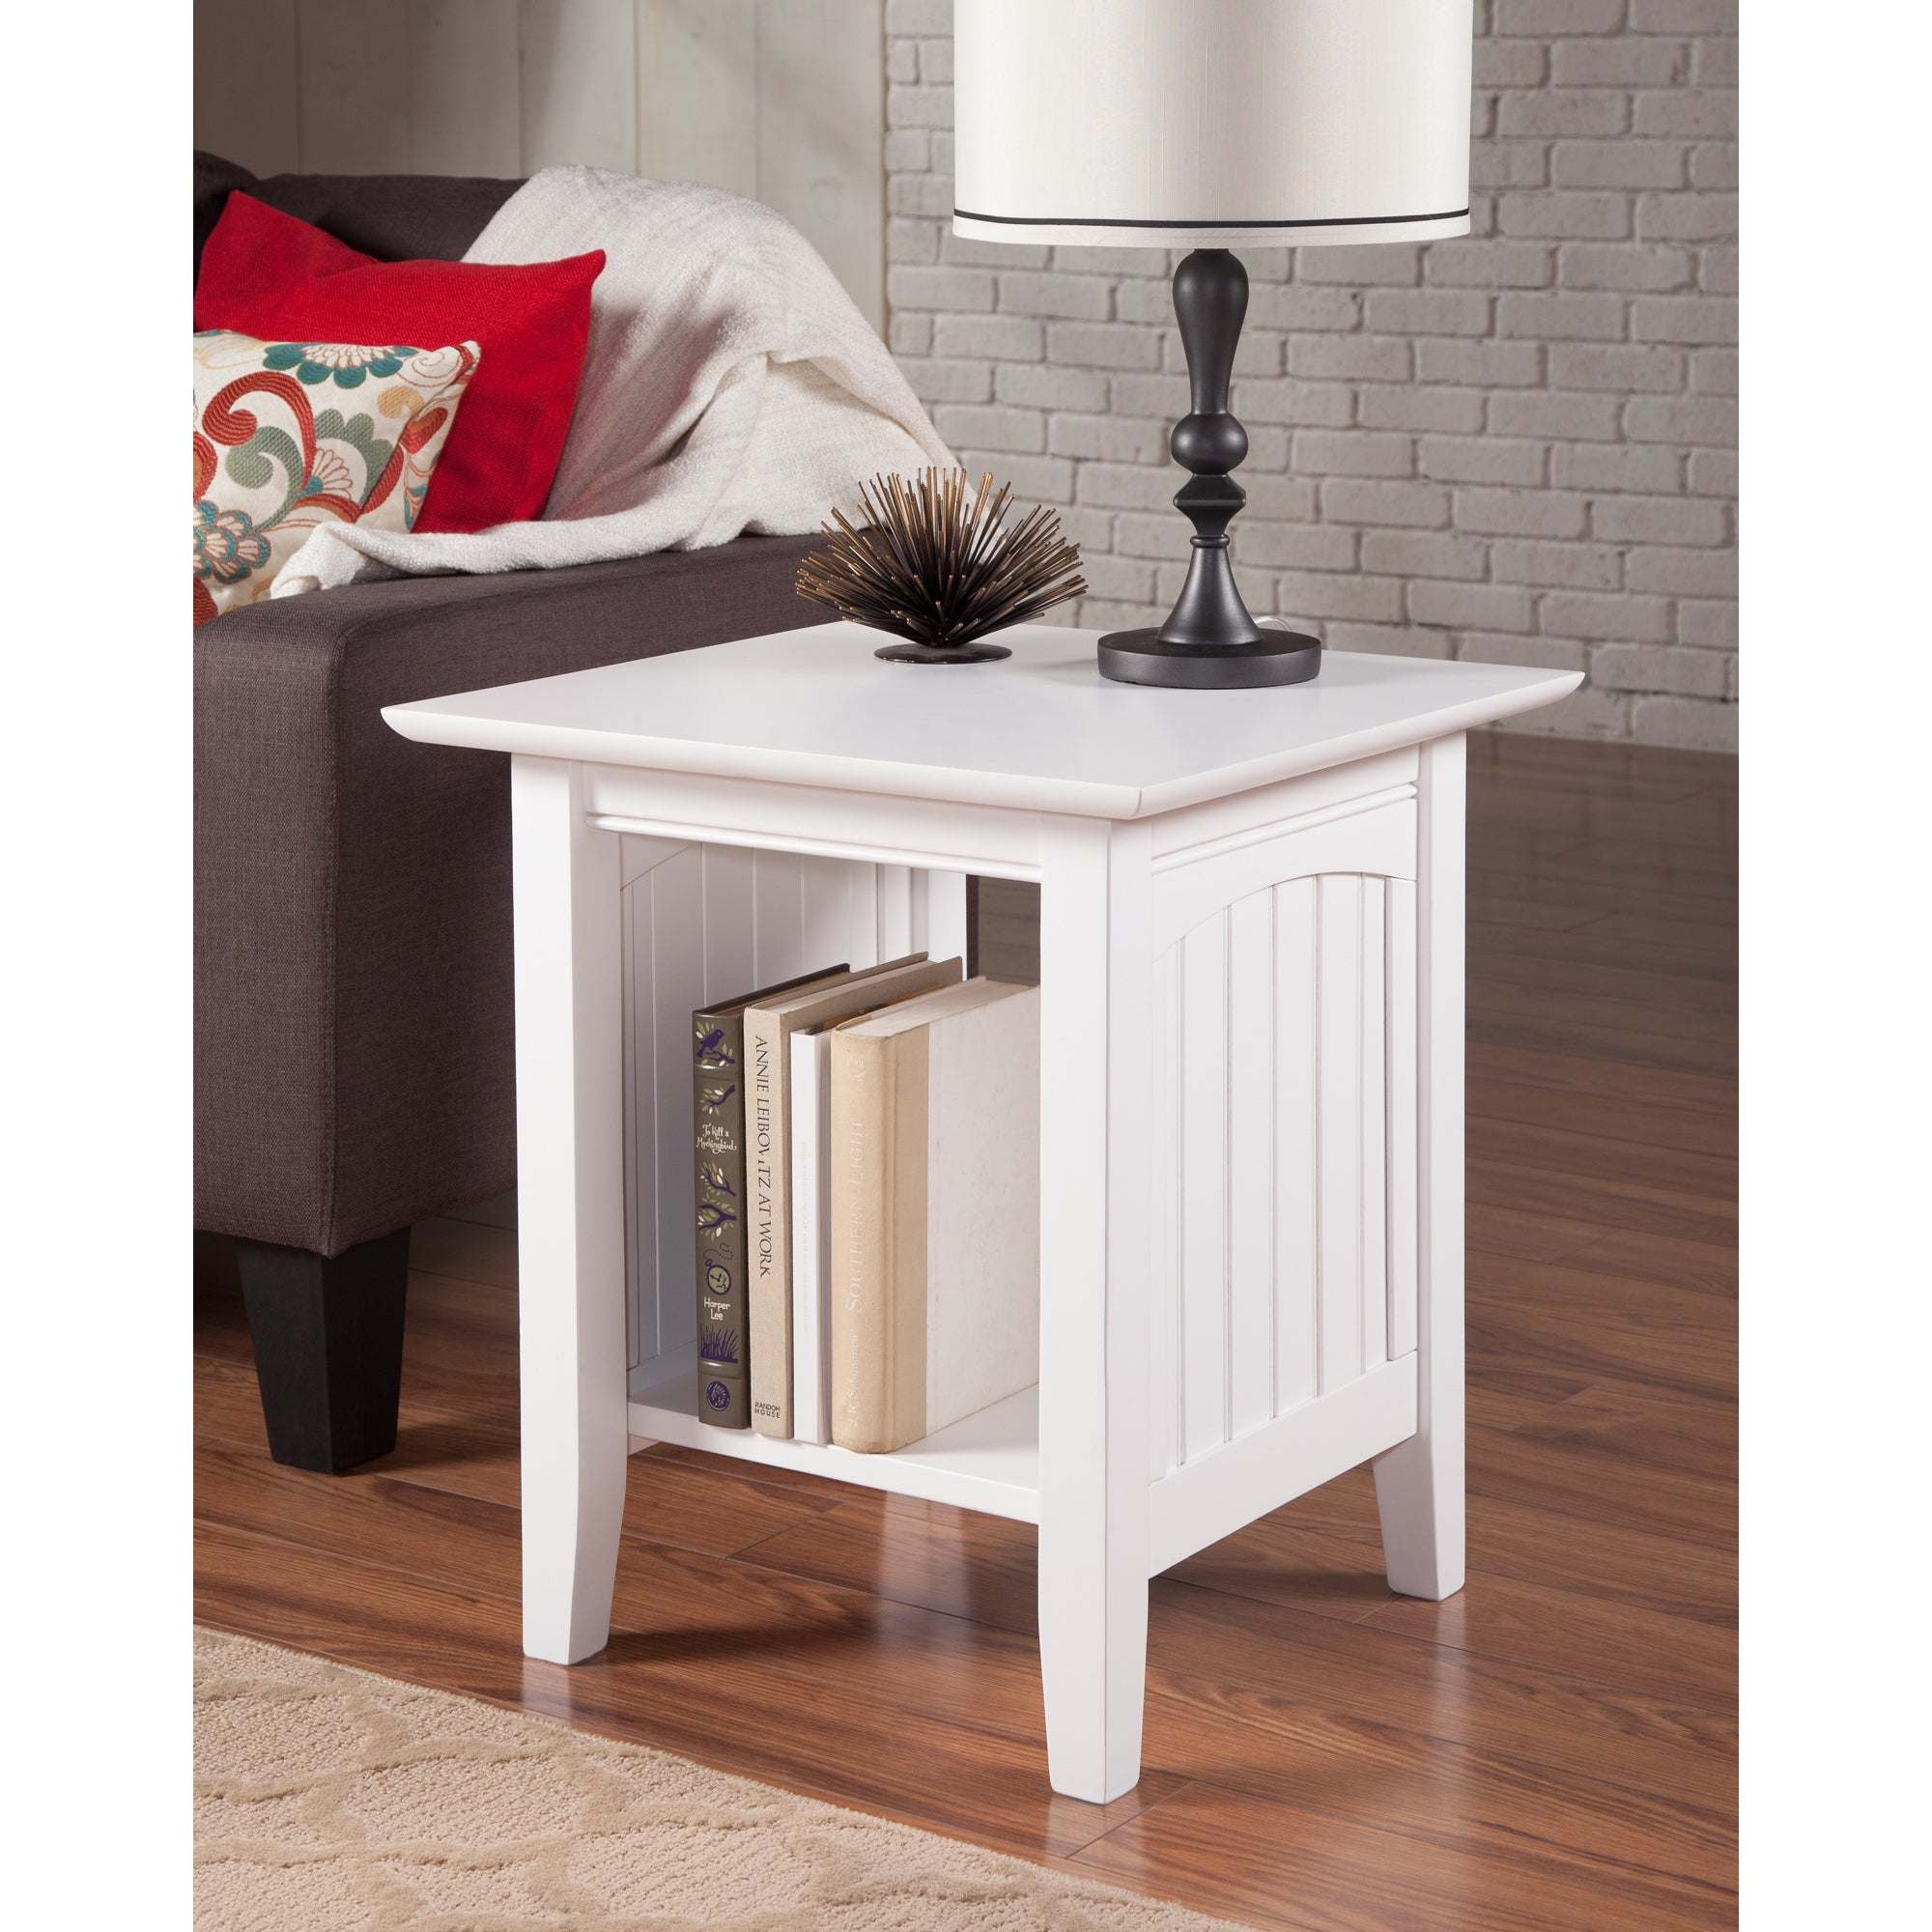 end table walmart white multiple com colors sasha tables ip accent